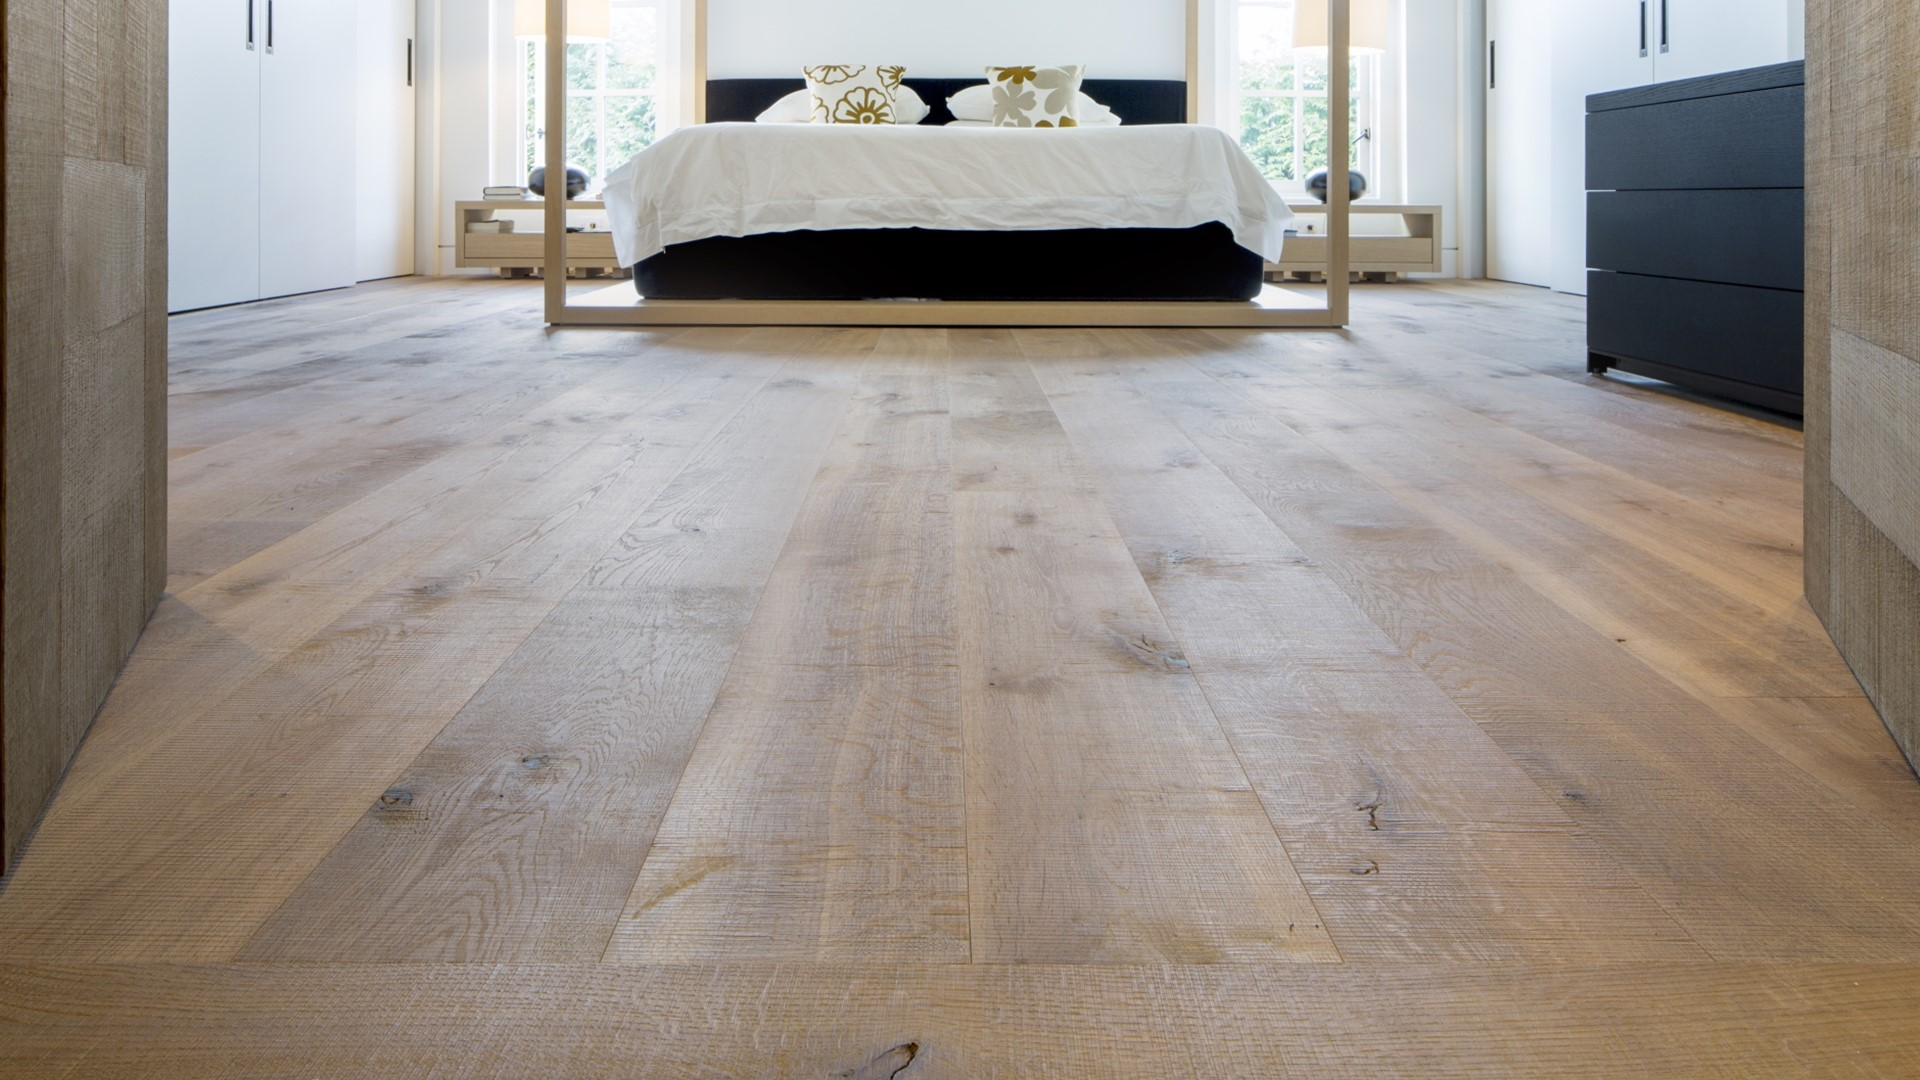 Private Residence Vancouver contains Hakwood Savoy flooring